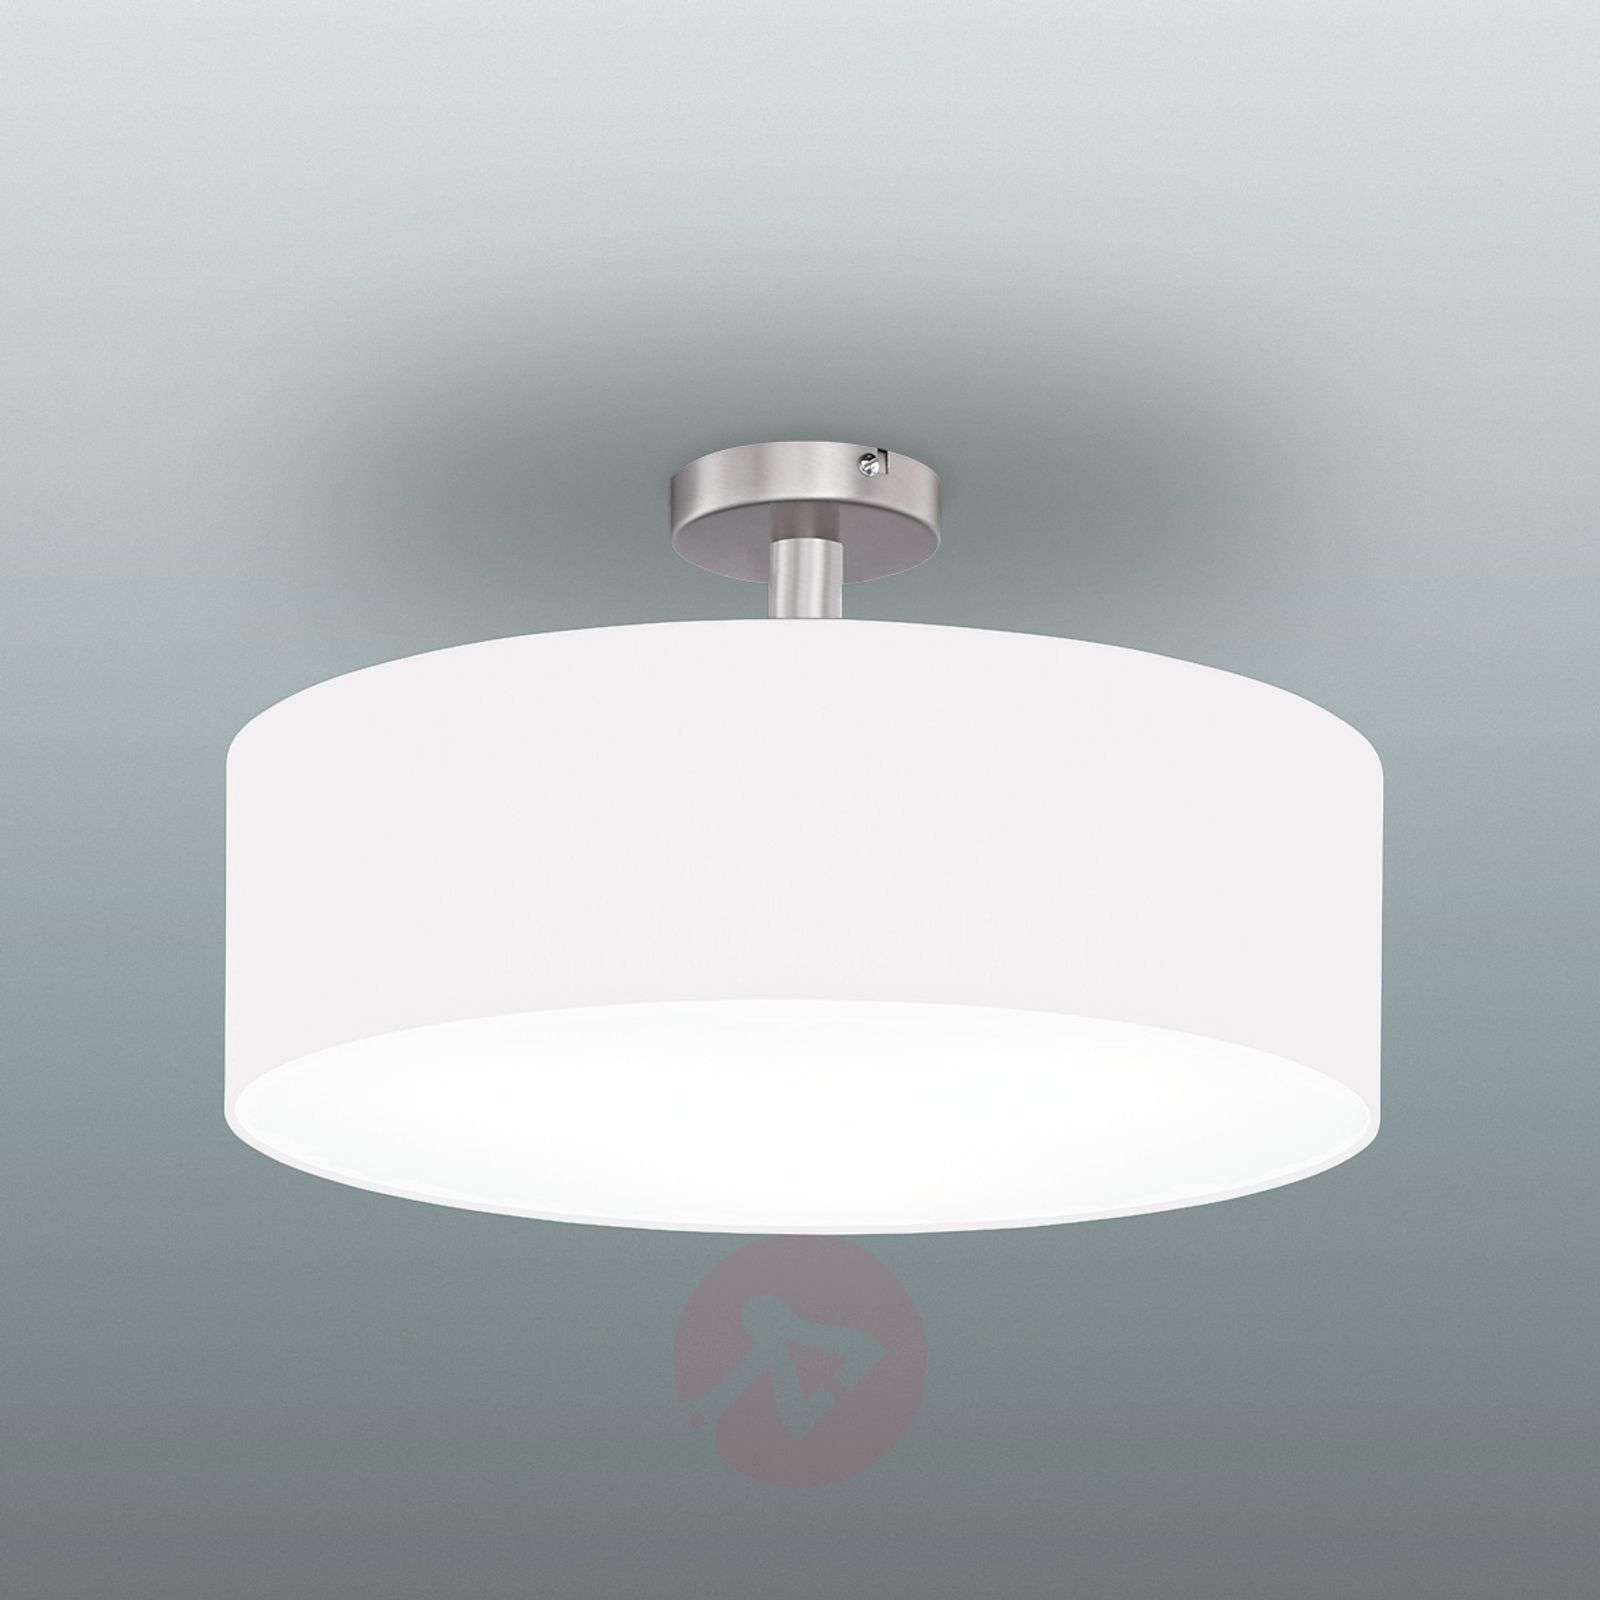 Mara Clearance Ceiling Light